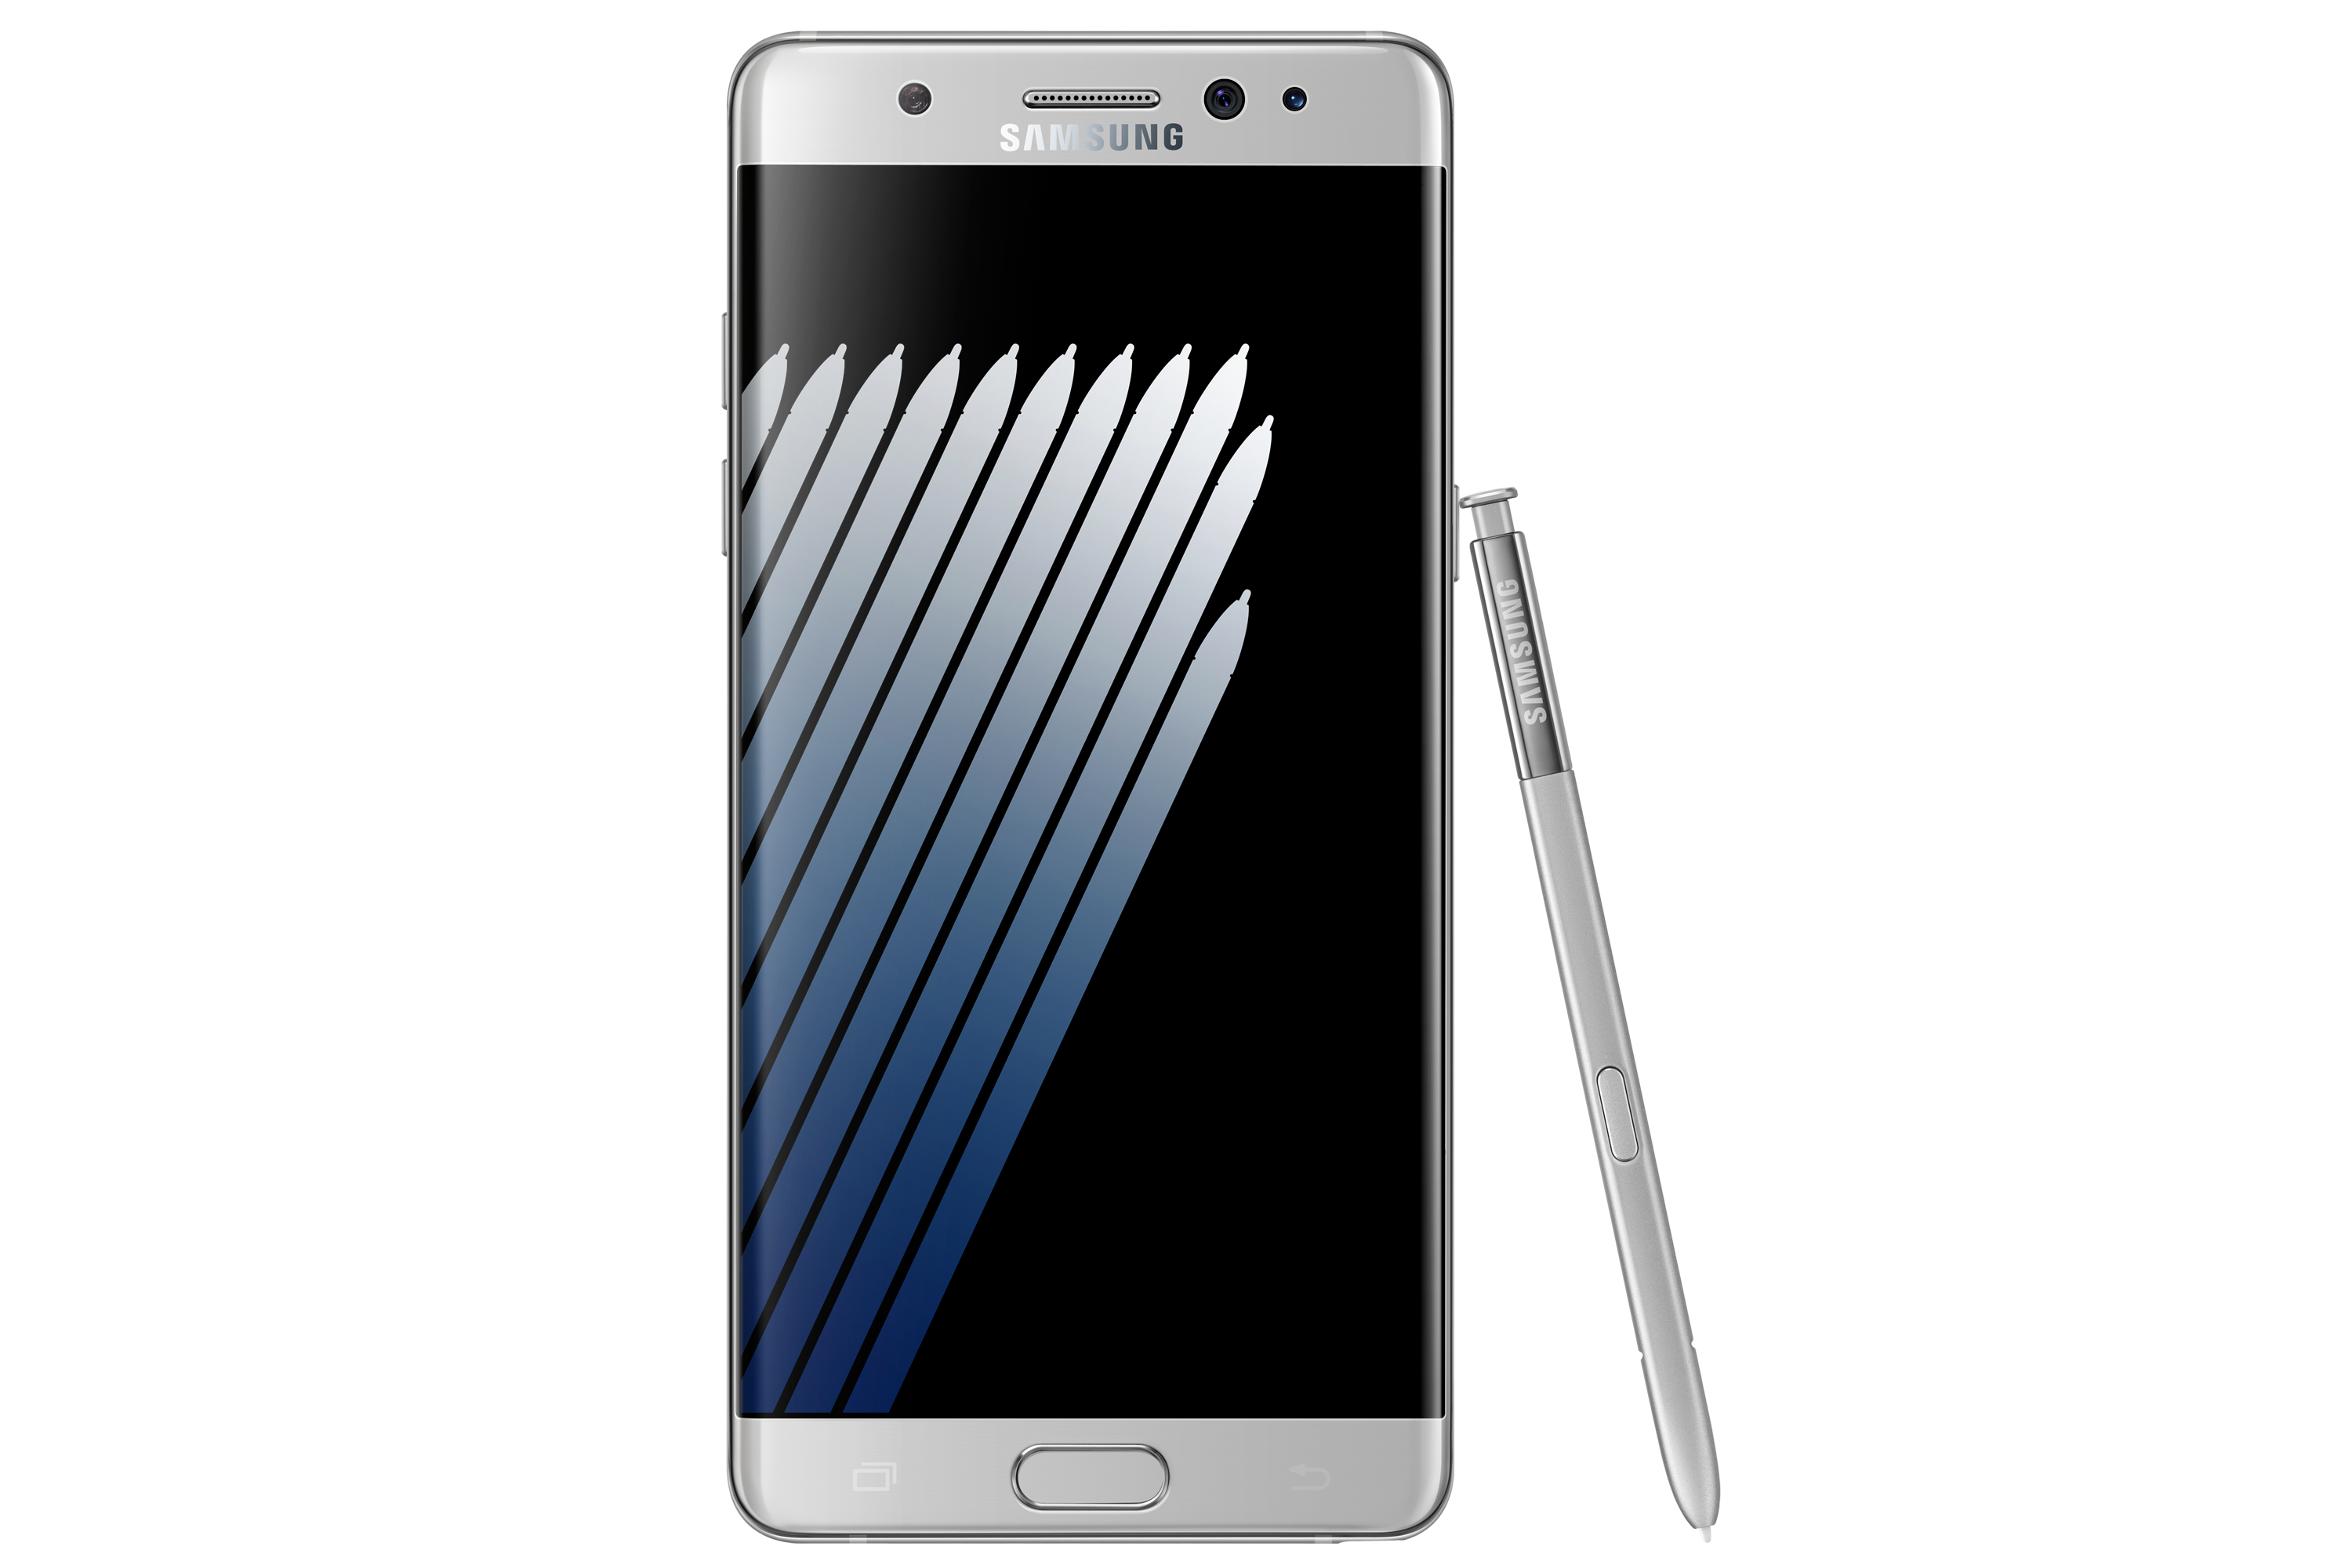 samsung galaxy note 7 goes official with usb type c iris scanner water resistant body and more. Black Bedroom Furniture Sets. Home Design Ideas